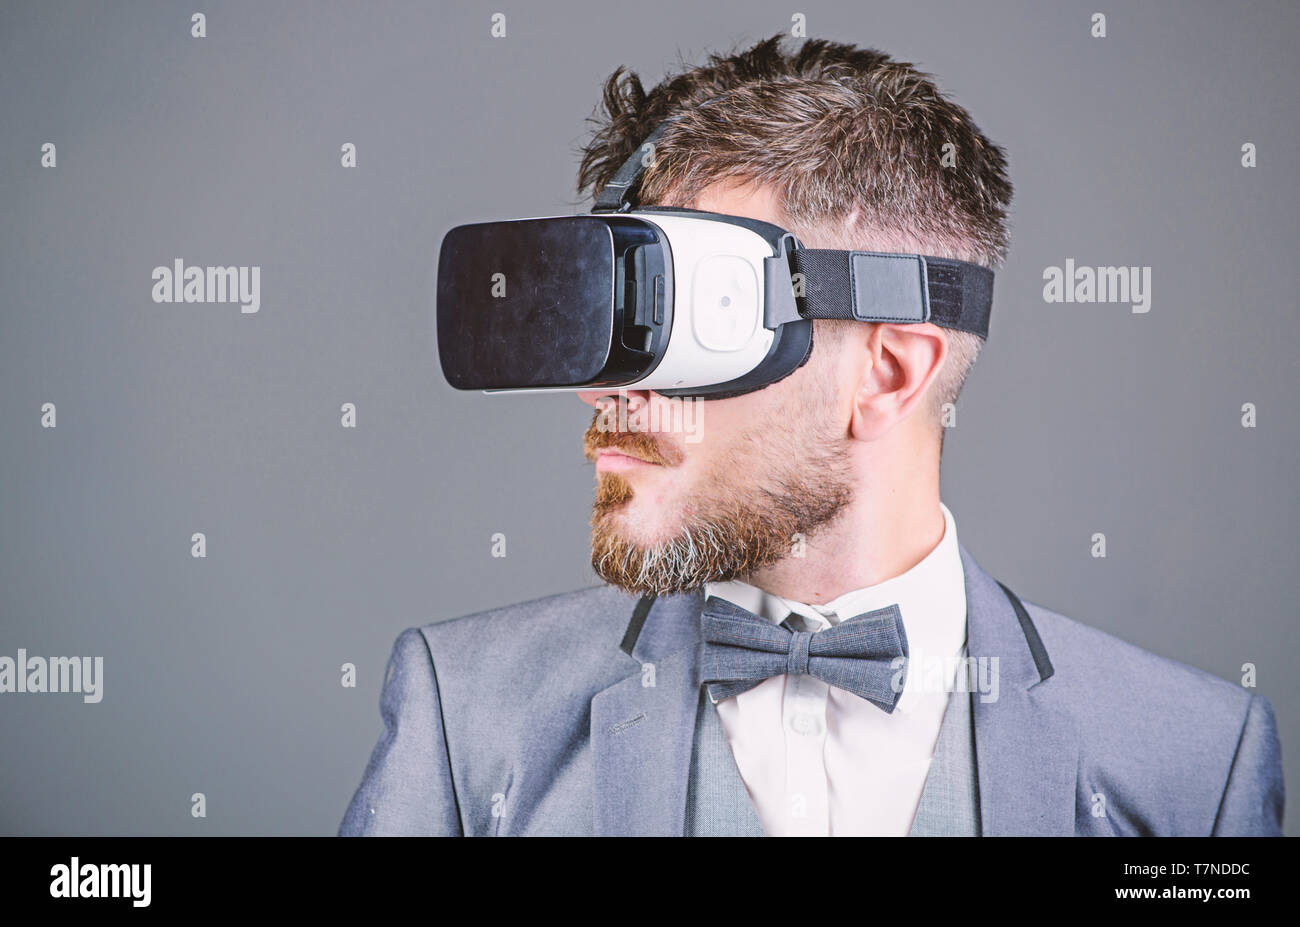 Business man virtual reality. Modern gadget. Innovation and technological advances. Business implement modern technology. Businessman explore virtual reality. Digital technology for business. - Stock Image